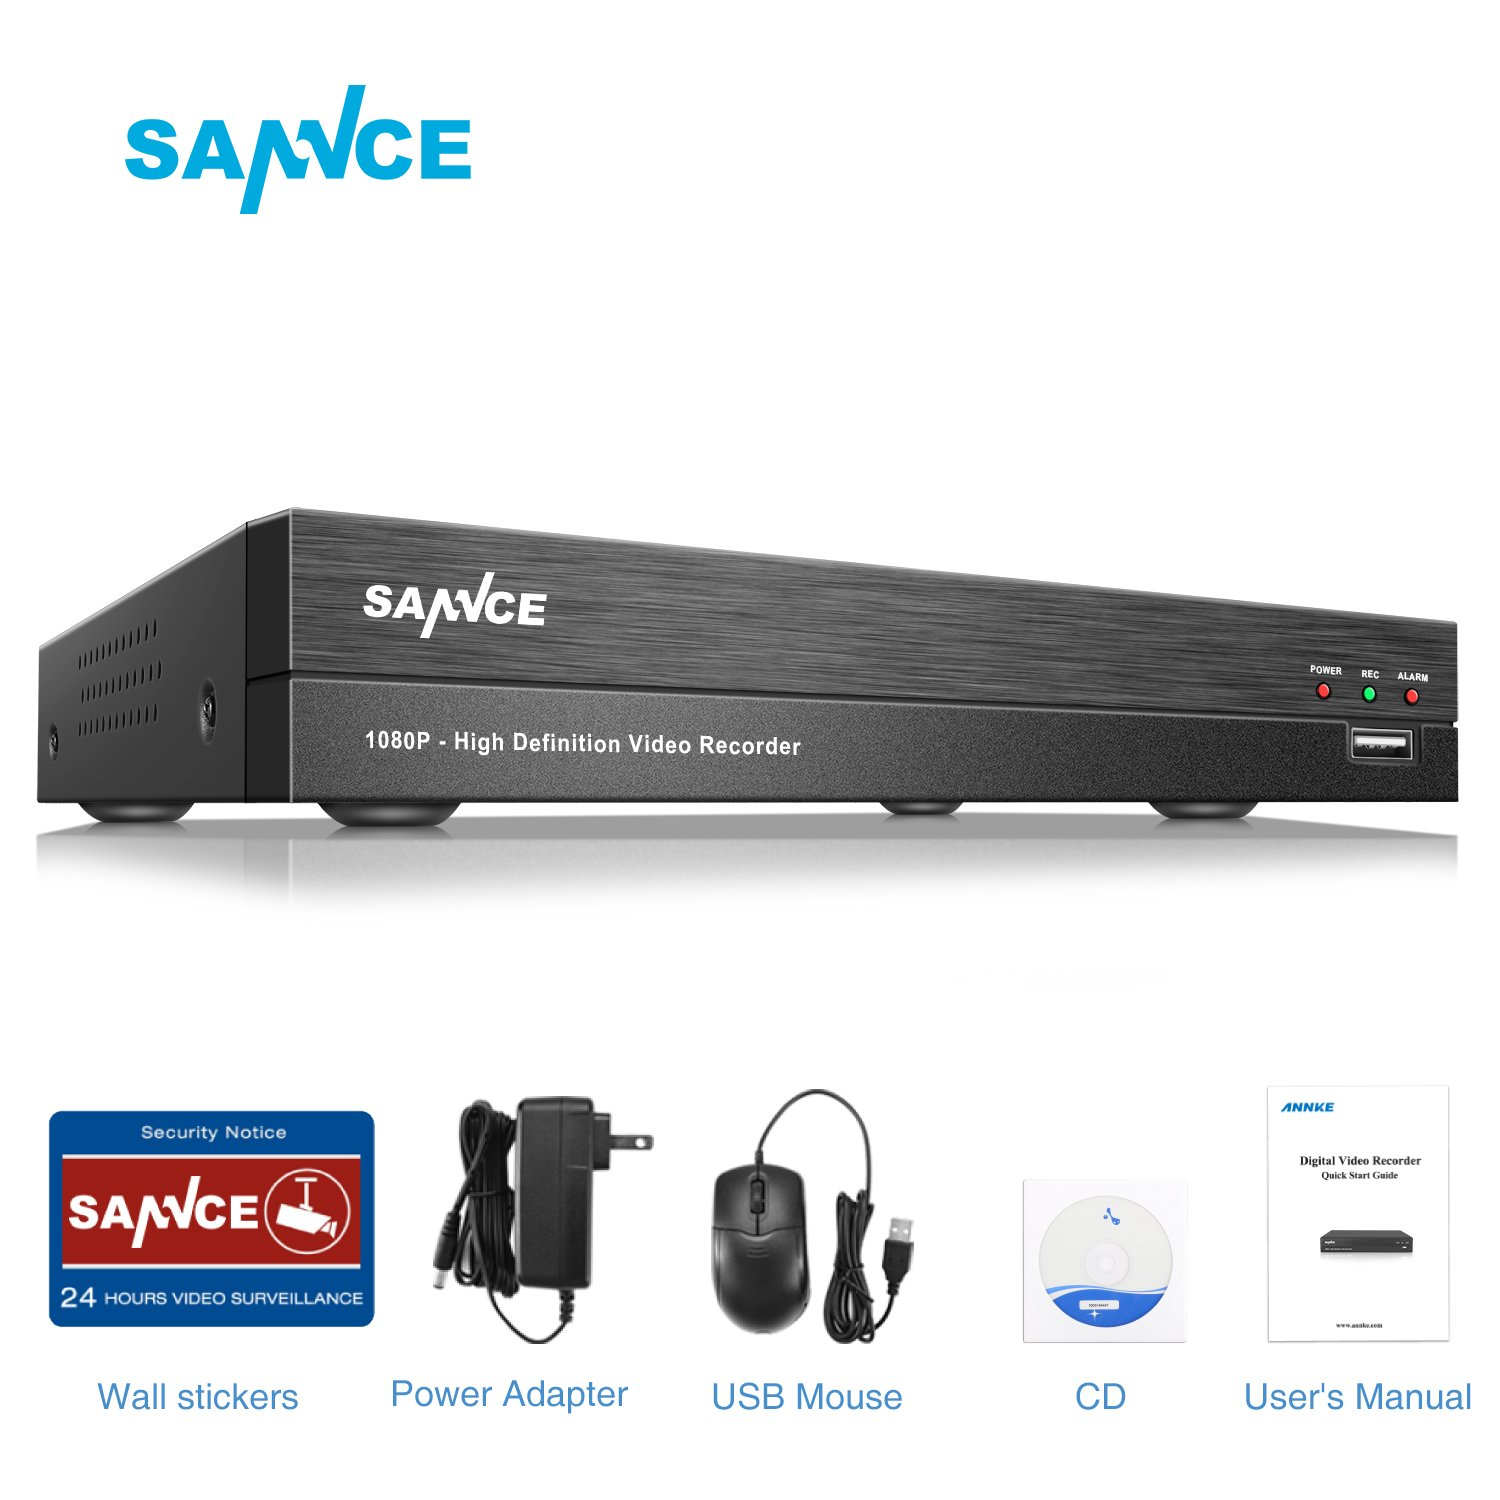 SANNCE 8 Channel 1080P Security DVR Recorder, TVI/CVI/IP/CVBS/AHD 5 in 1 CCTV DVR for Security Camera System - NO HDD